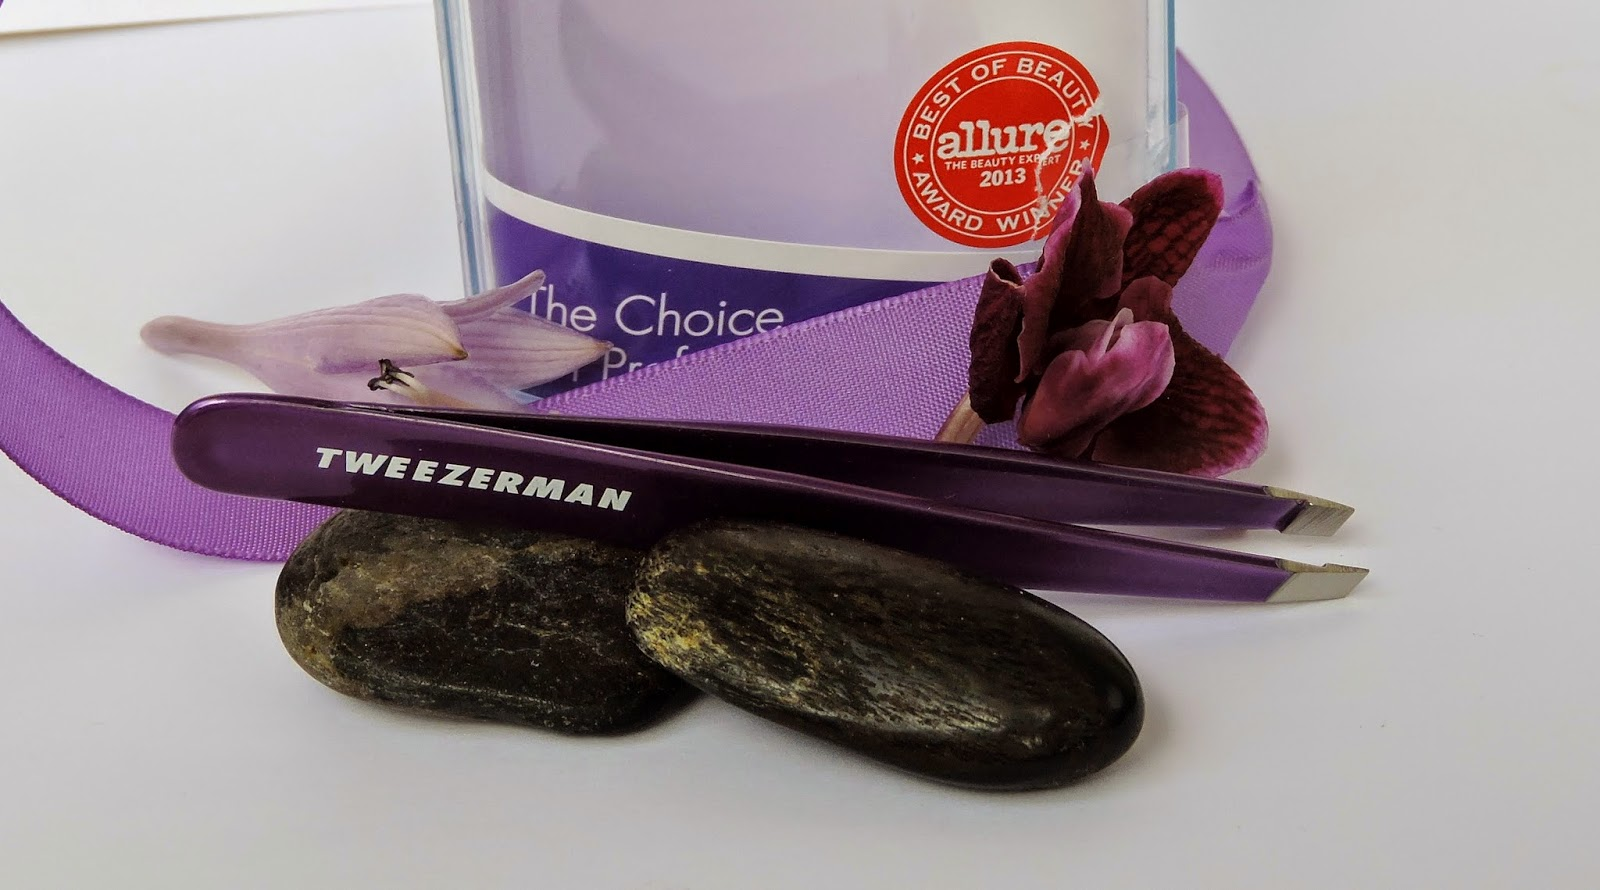 Tweezerman Slant Tweezers, Reign, Review, Beauty, Haircare, Makeup, Eyebrow, Arch, Plucking, Grooming, The Purple Scarf, Melanie.Ps, Toronto, Ontario, Canada, Award winning, Professional, Lou Lou Shops, Toronto Eaton Centre